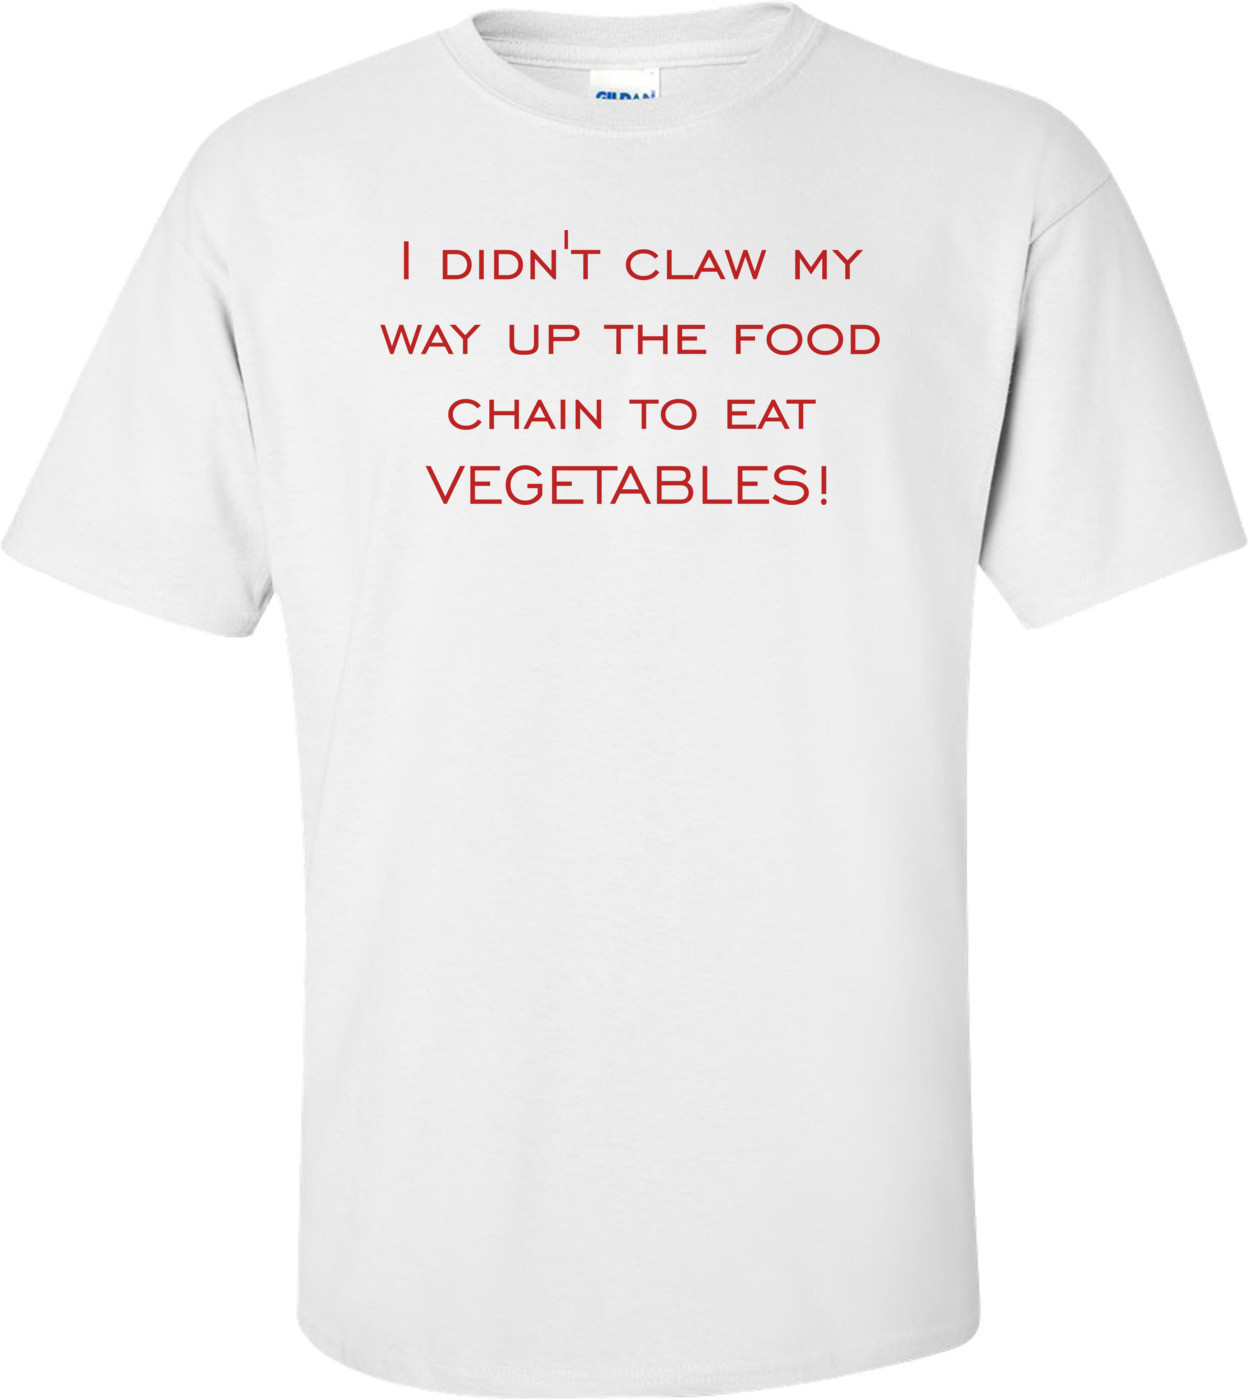 I didn't claw my way up the food chain to eat vegetables! Shirt